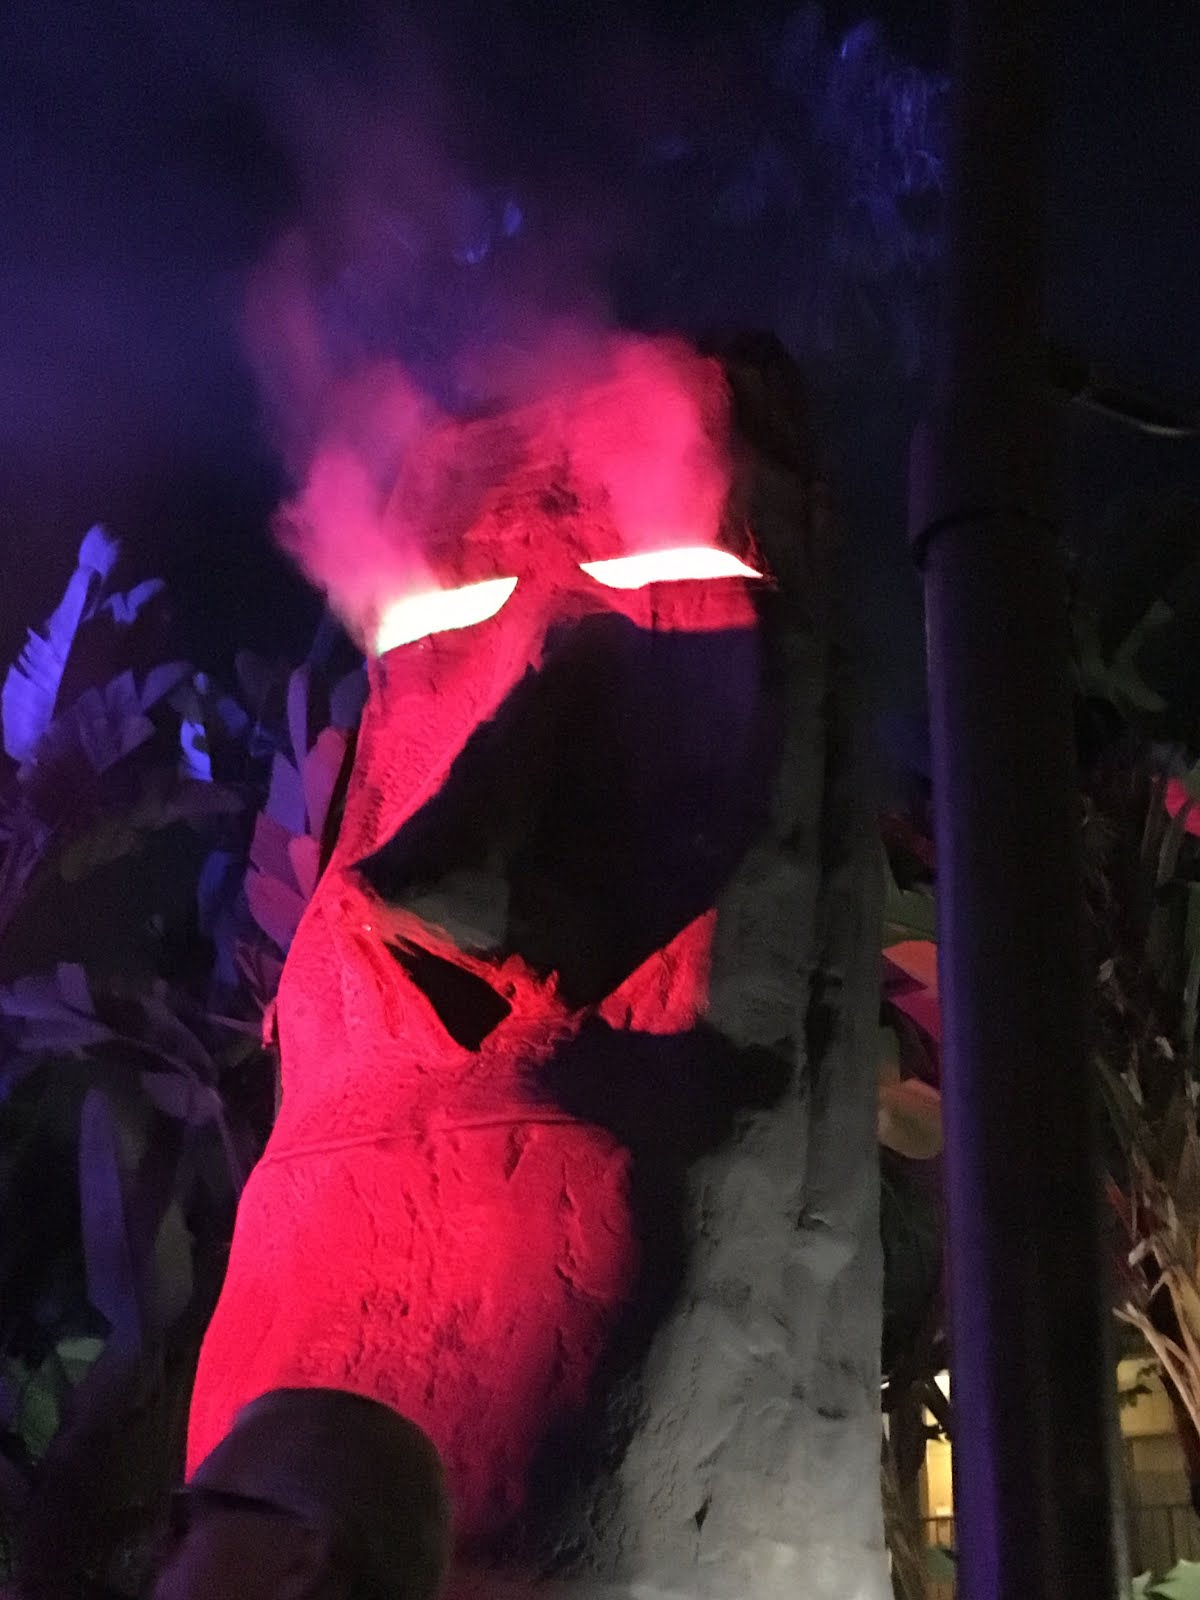 The mouth of this smoking' moai is a bar.